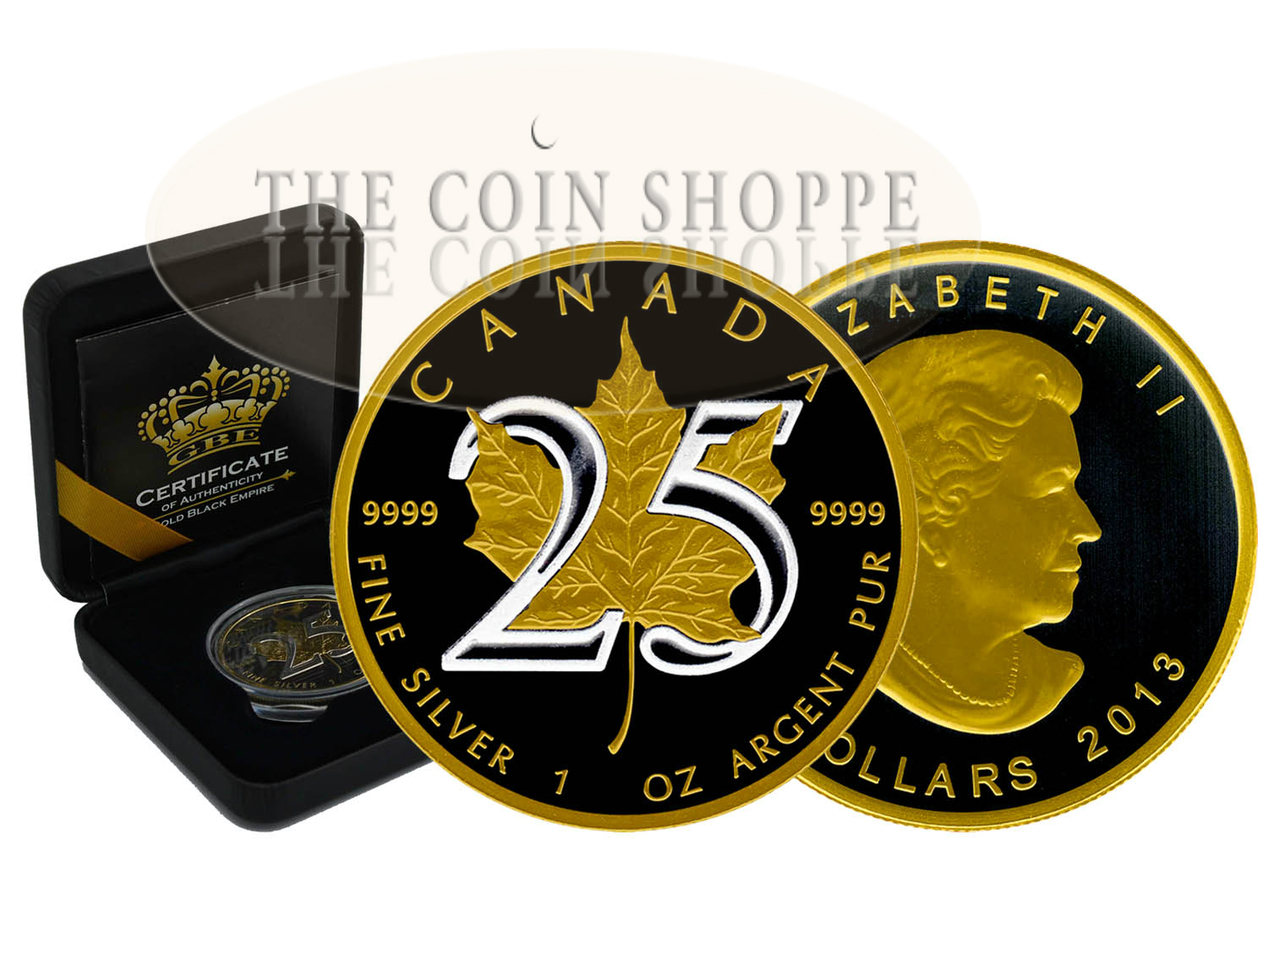 2017 1 Oz Silver Maple Leaf Black Rhodium And 24K Gold. GOLD BLACK EMPIRE